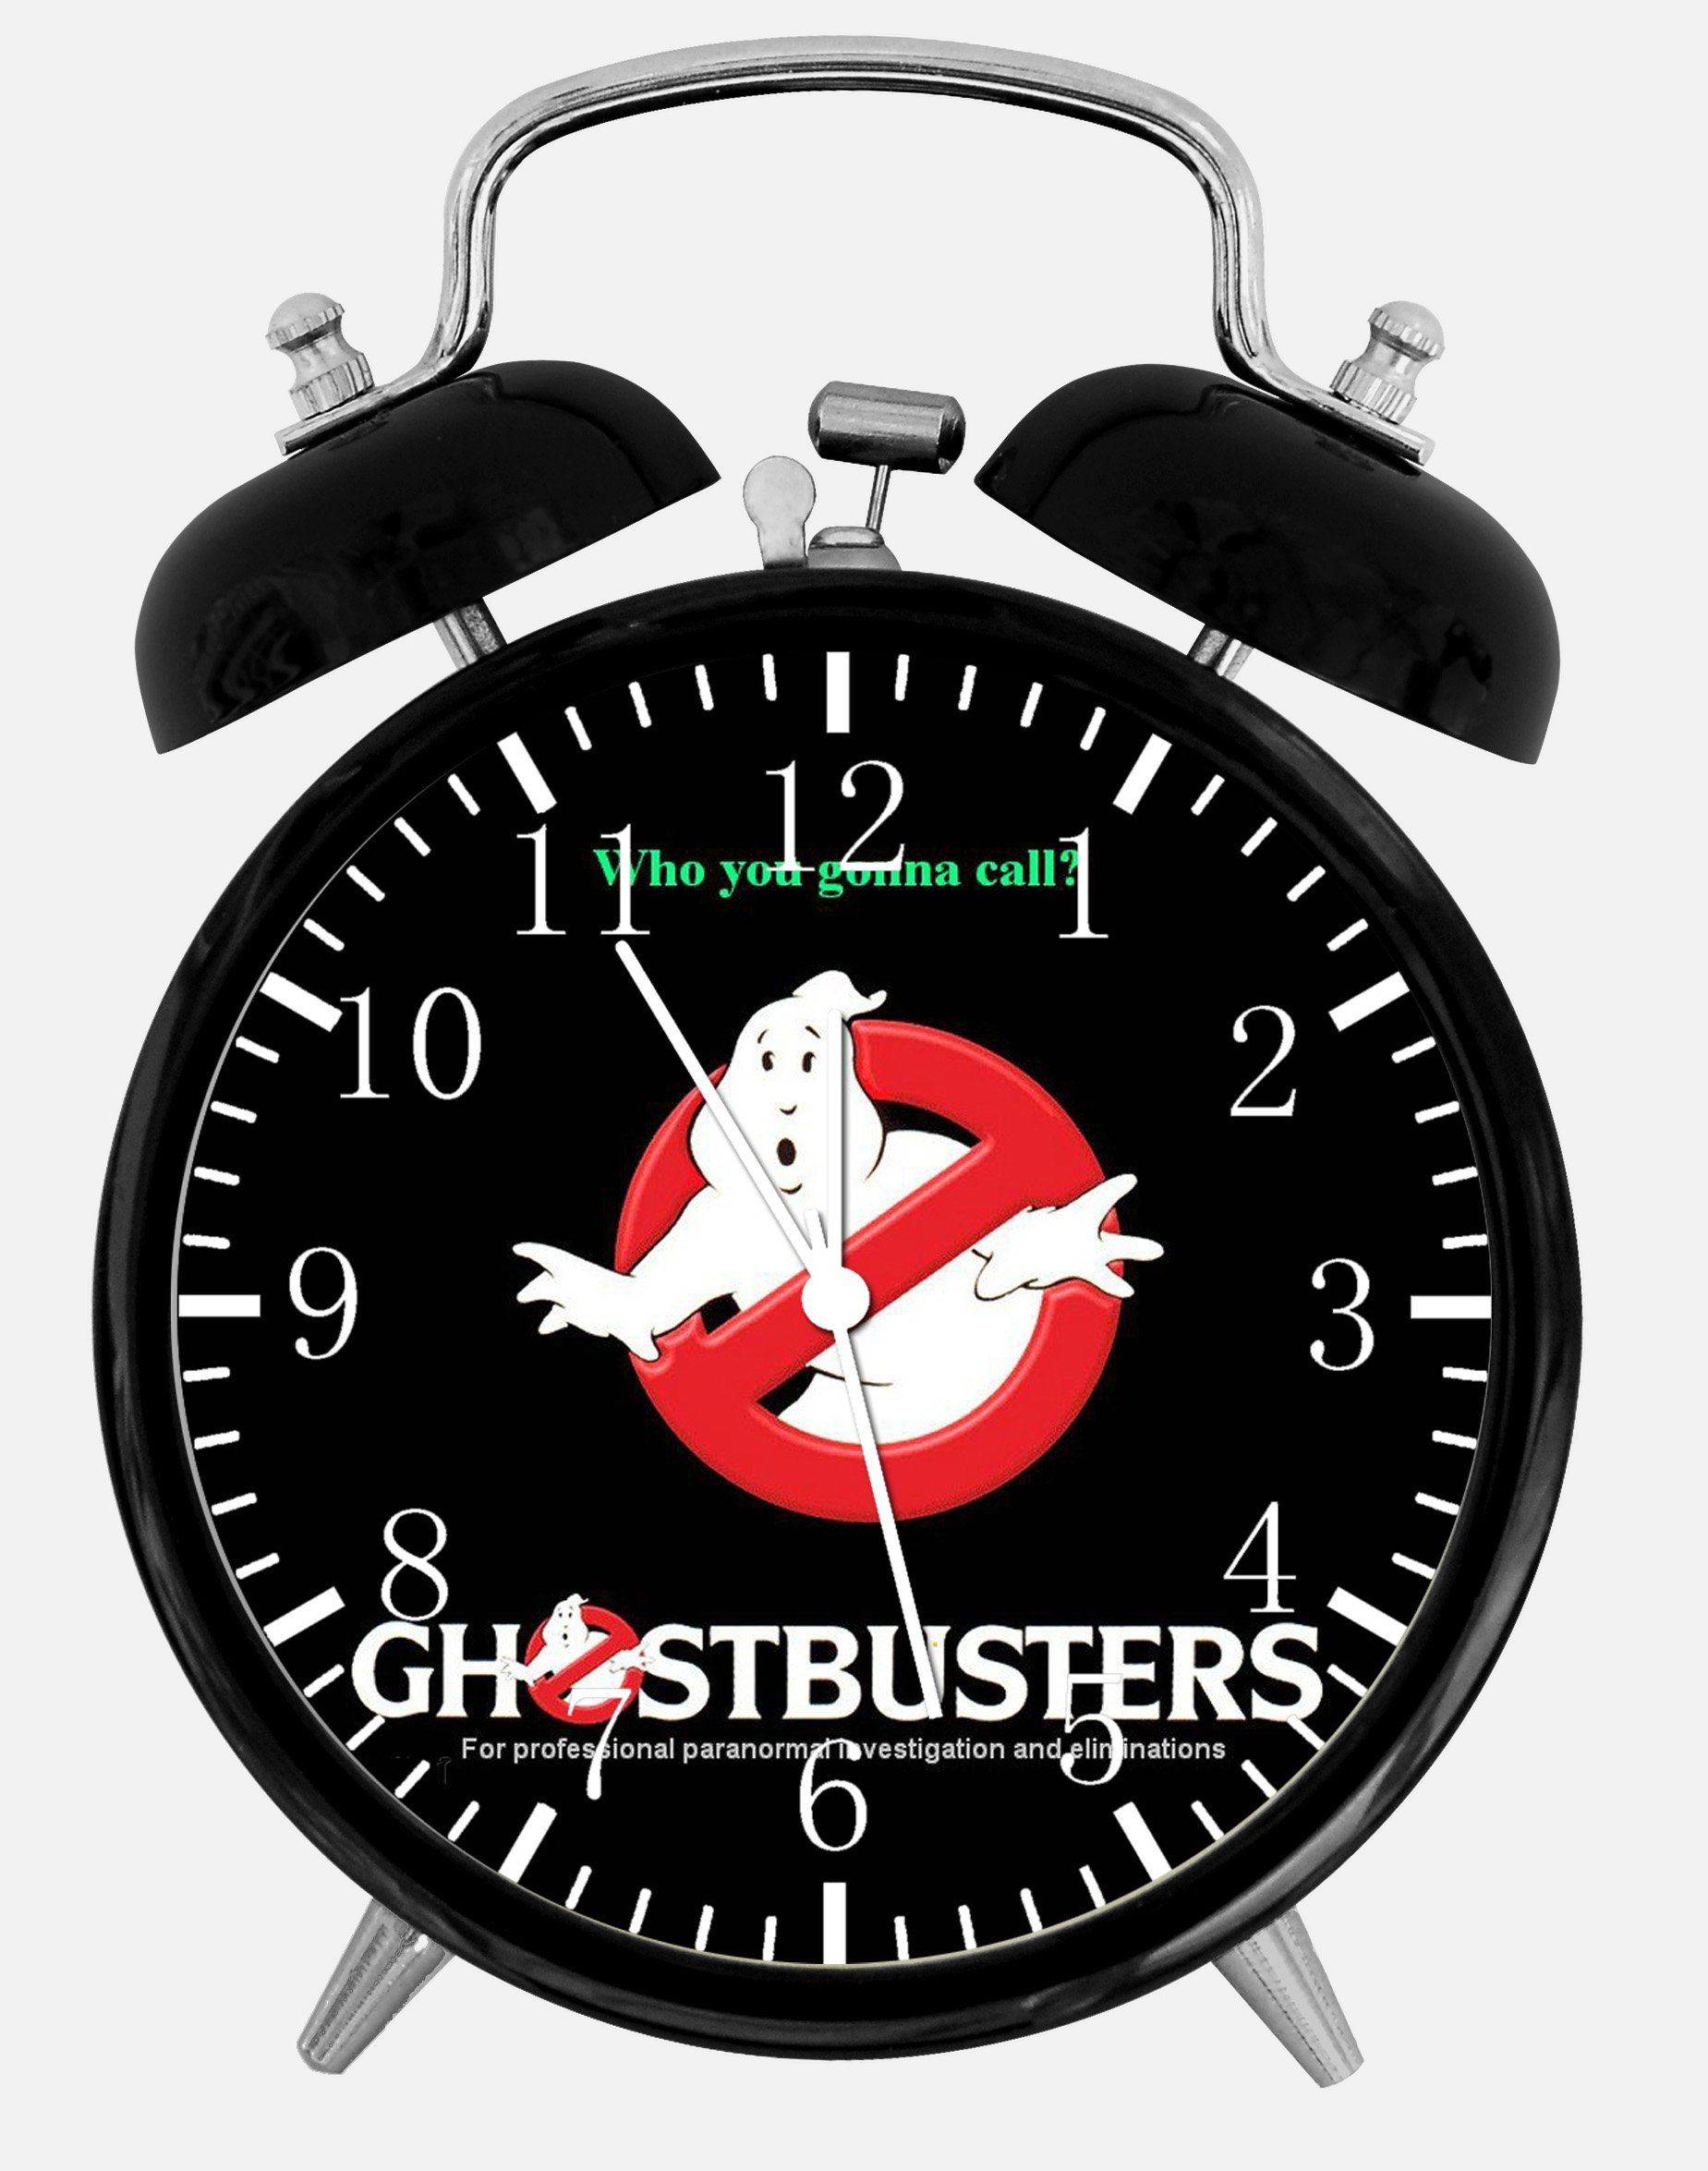 Ghostbusters Alarm Desk Clock 3.75'' Room Decor X47 Will Be a Nice Gift